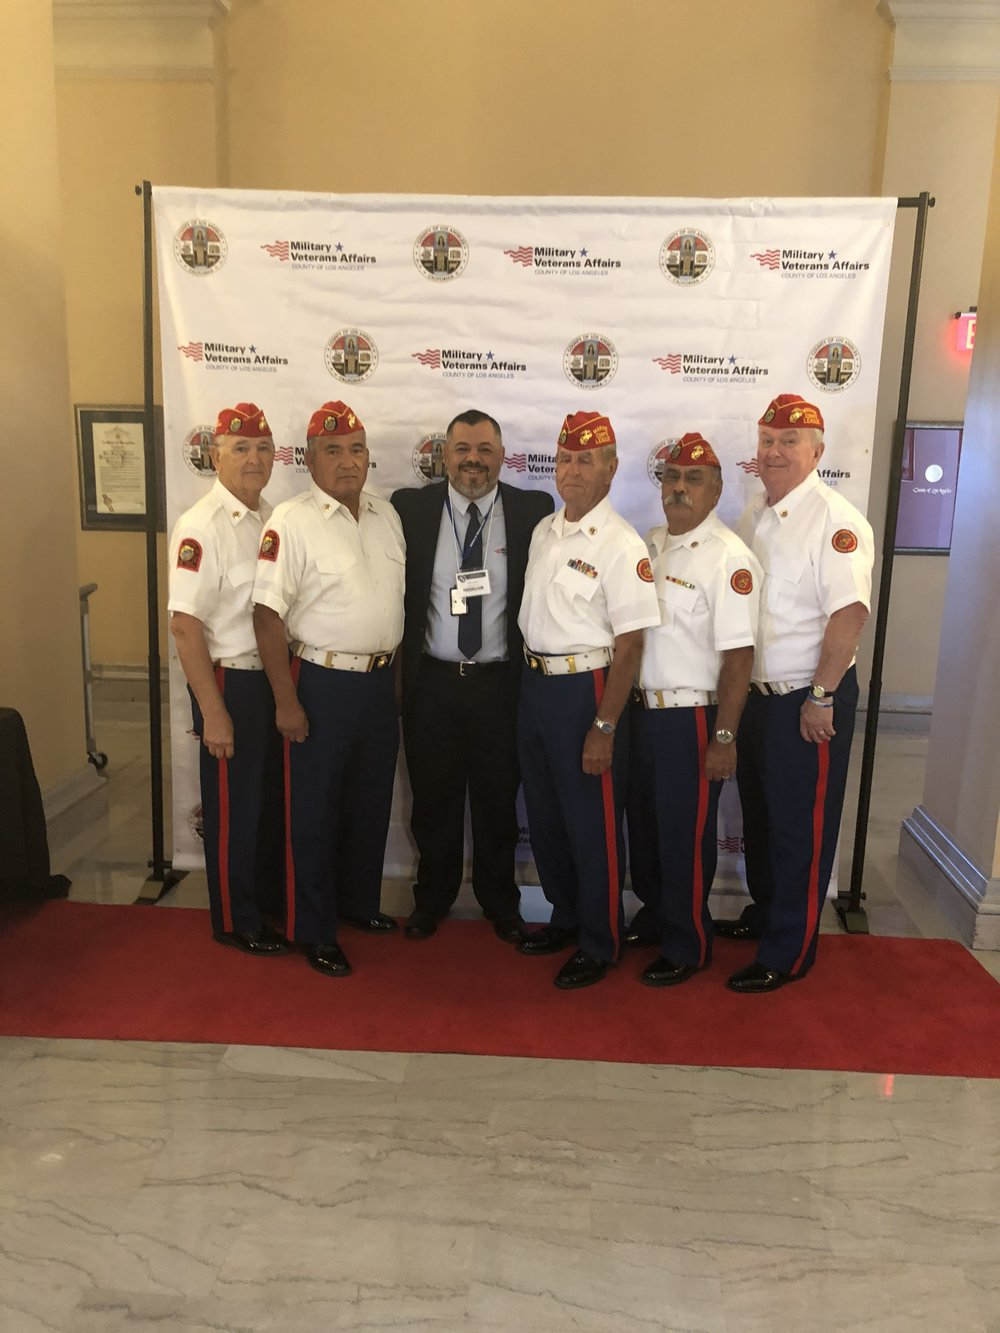 Detachment Color Guard for the Los Angeles Country Veterans Administration Fall Conference at the Bob Hope Patriotic Hall in Los Angeles   L/R: Ben Pfister, Fausto Galvan, VA Service Supervisor Christopher Duarte, John Coley, Harry Hodges, and Dick Jennings